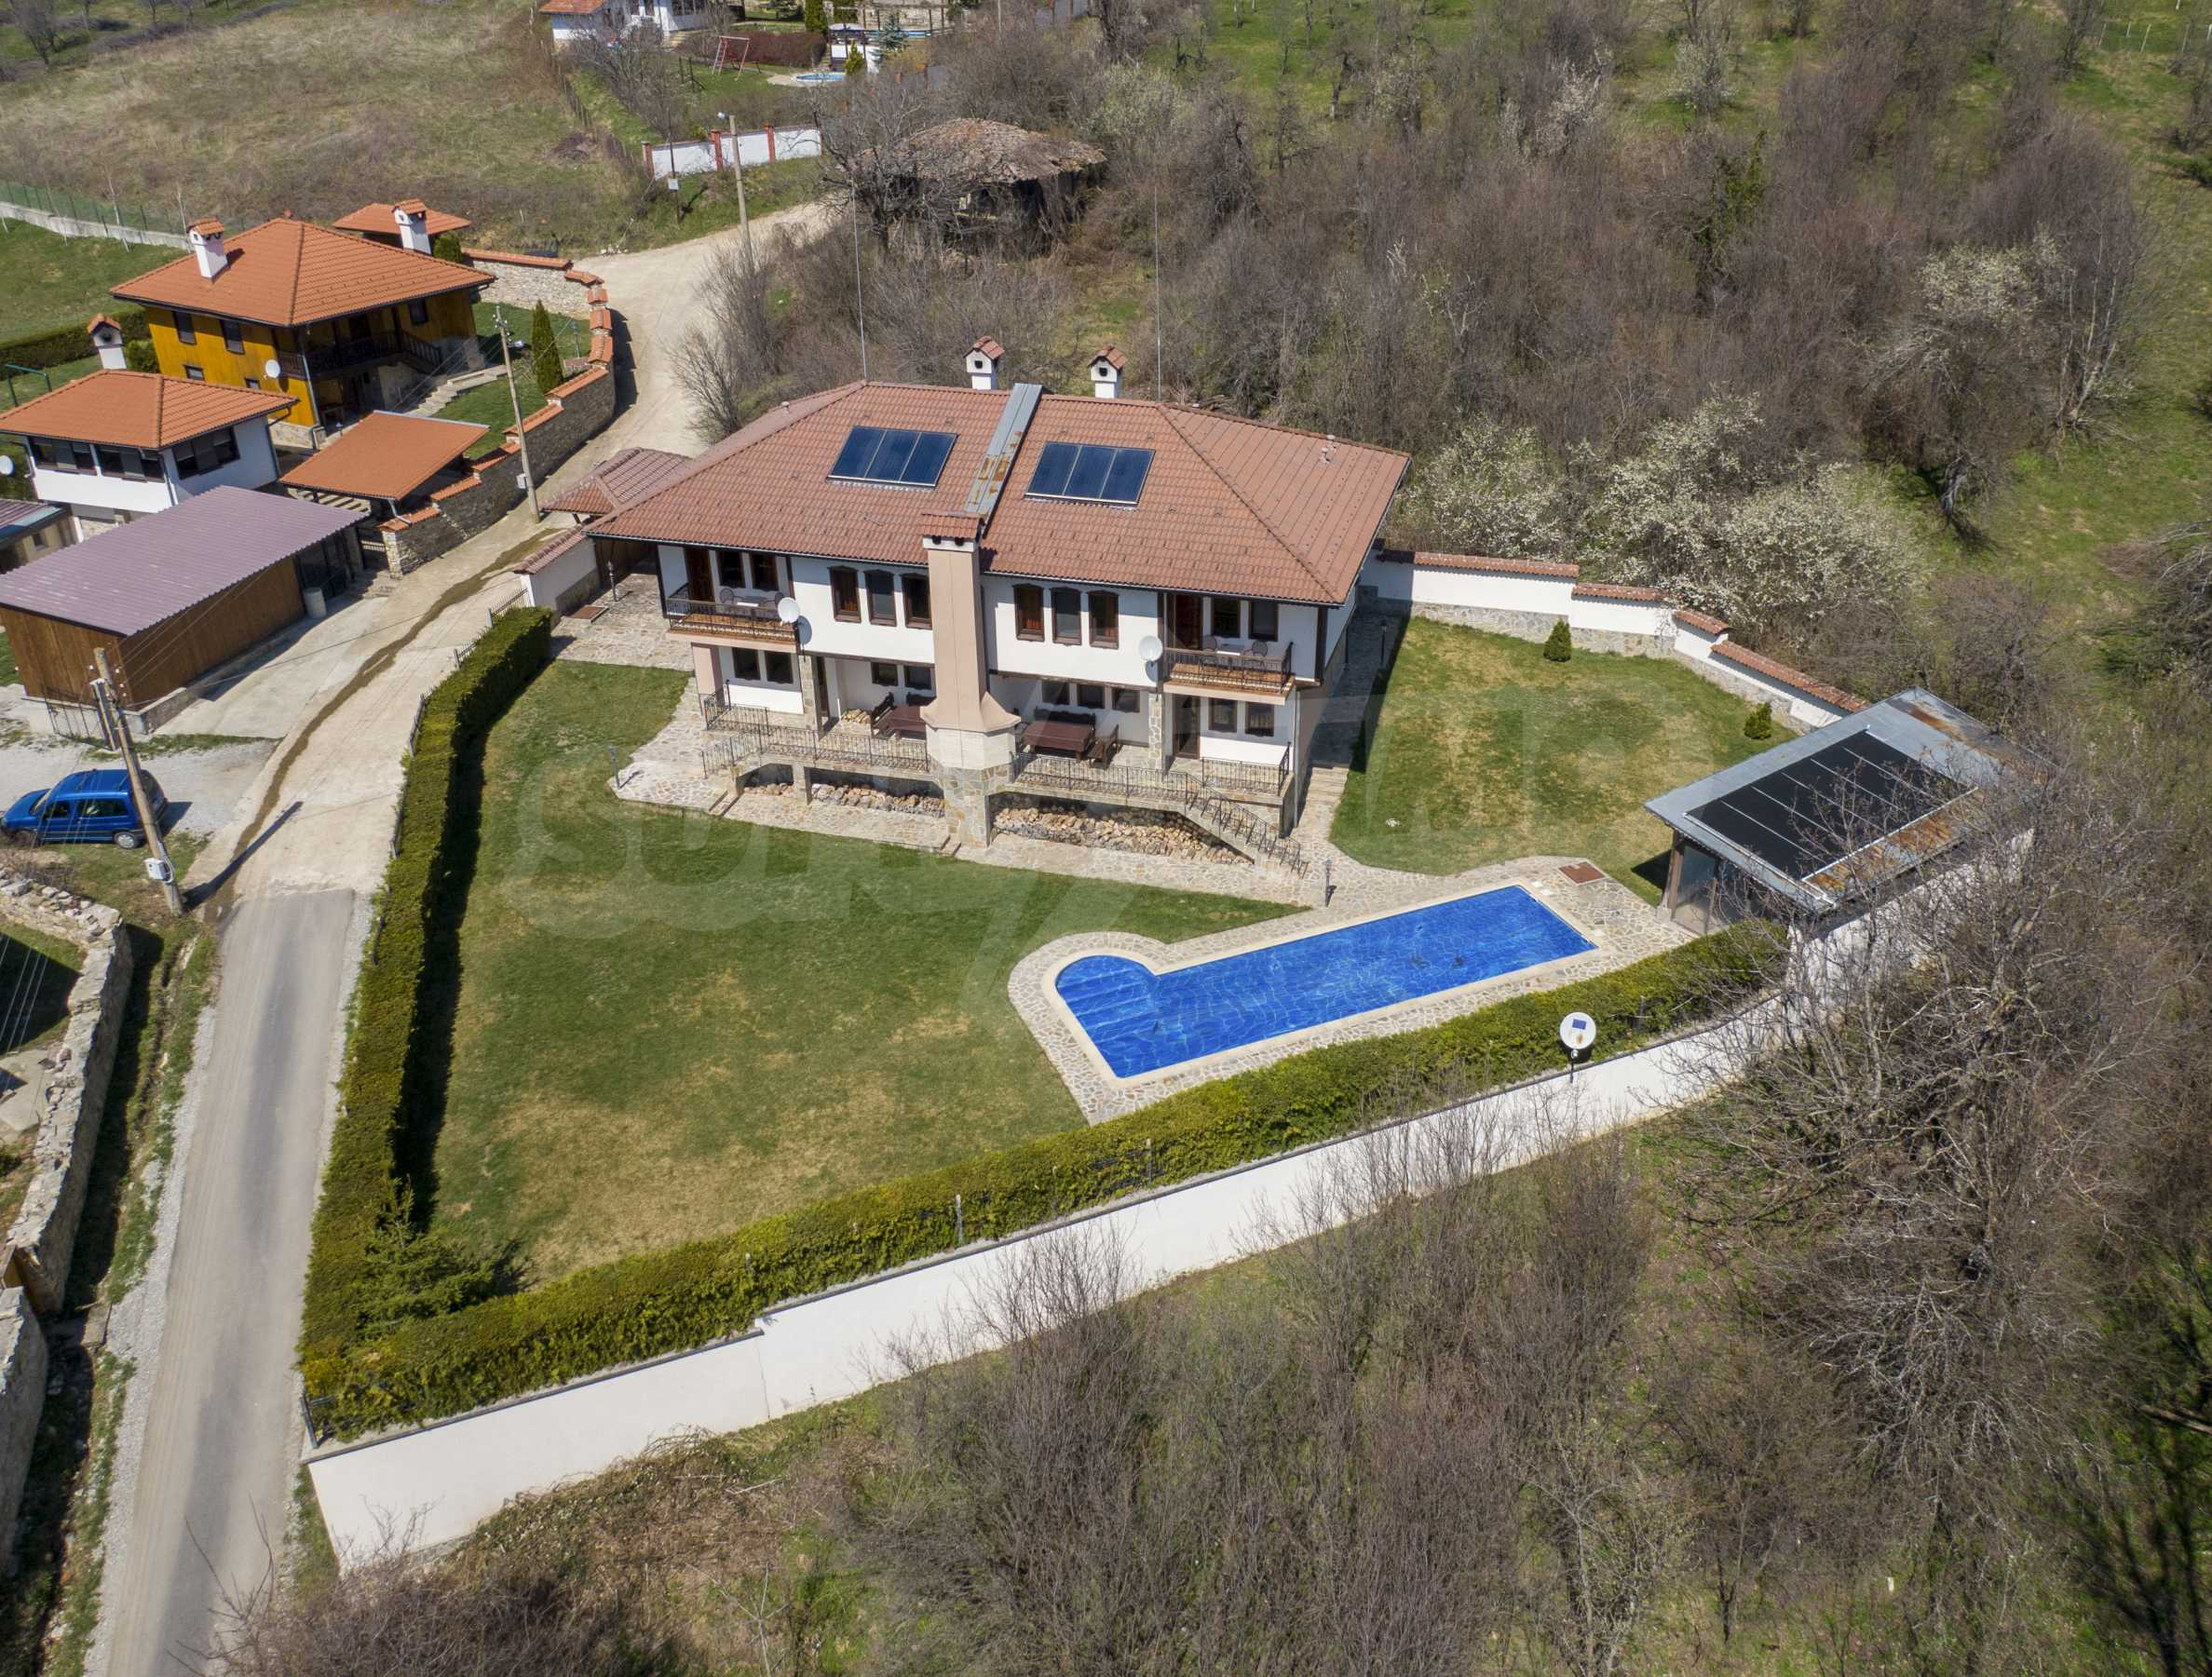 Two houses with swimming pool located close to a lake 8